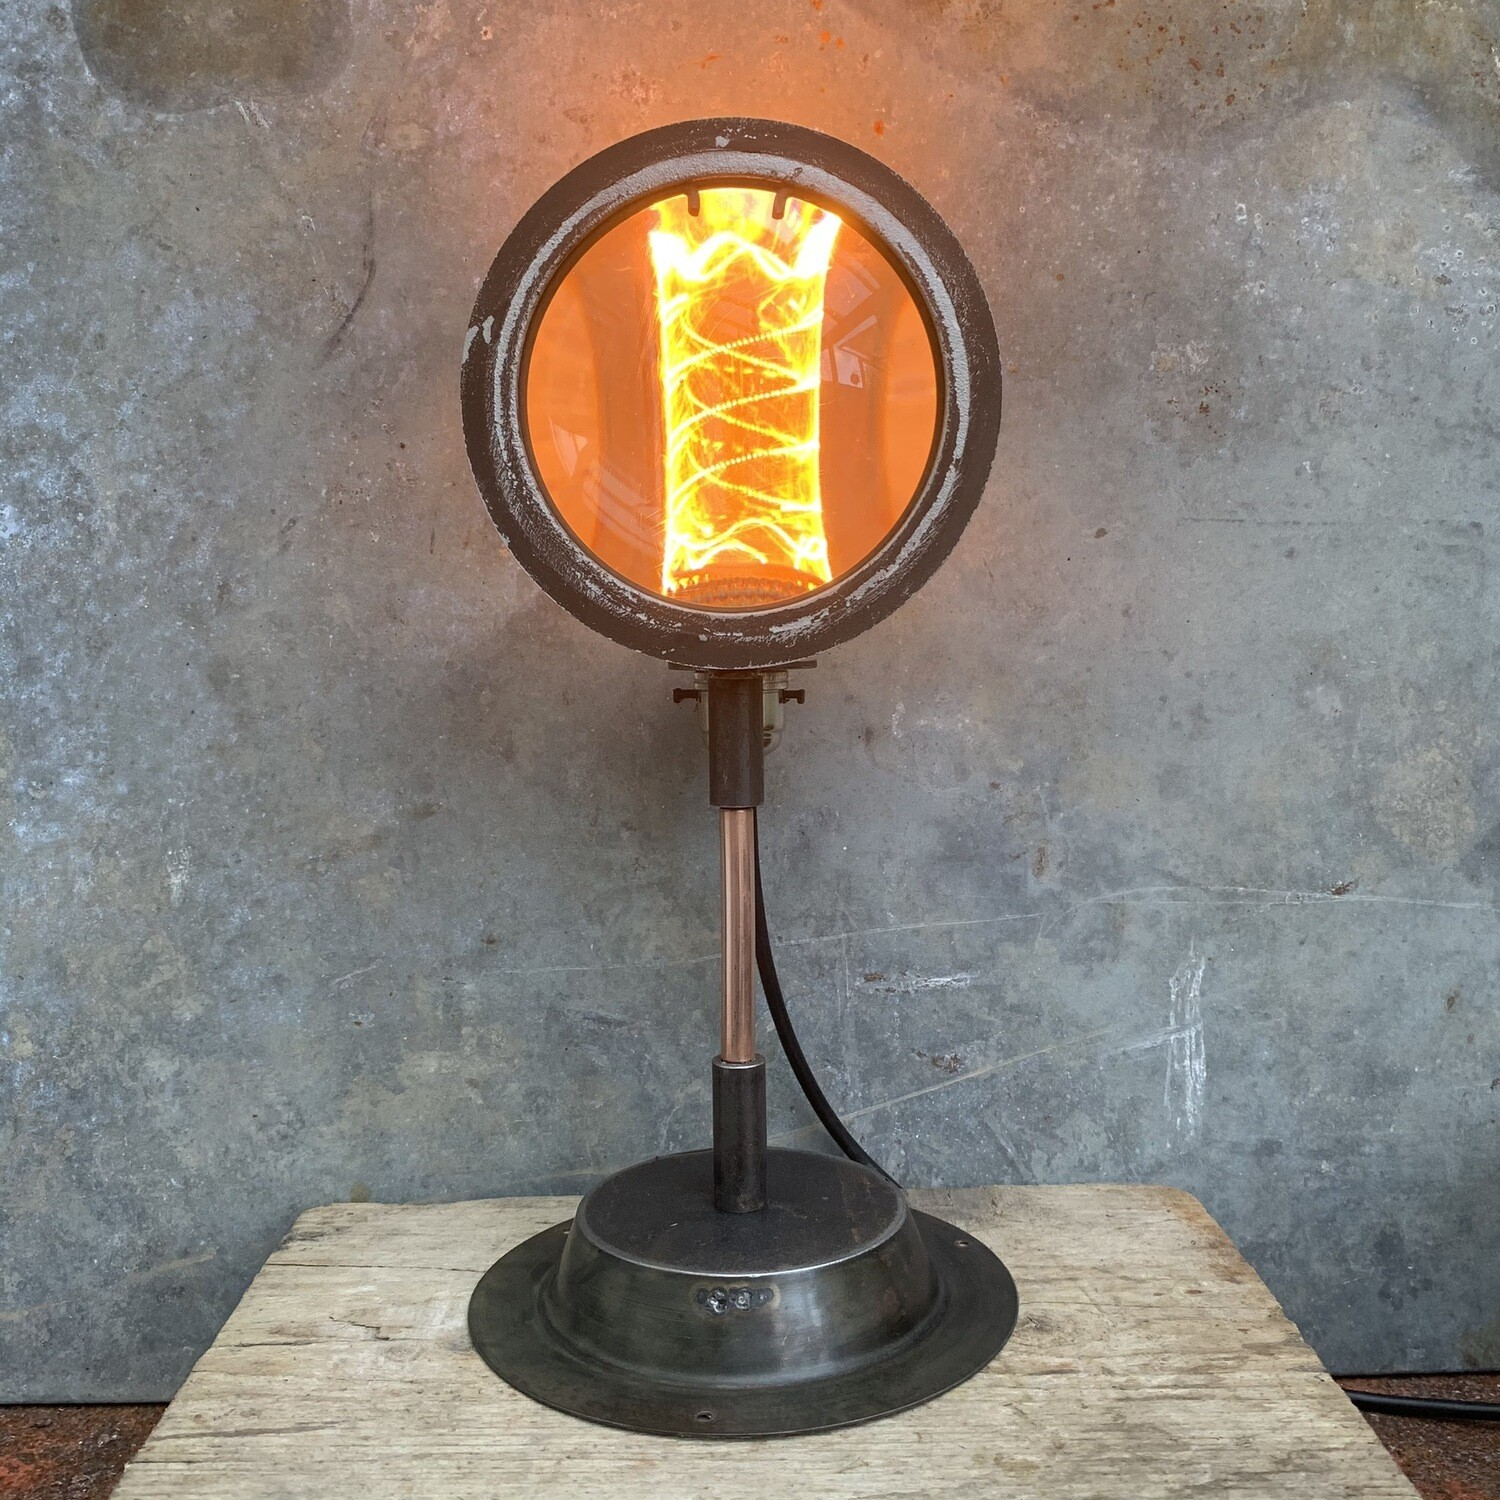 Vintage Theatre Lamp Lens On Bespoke Stand